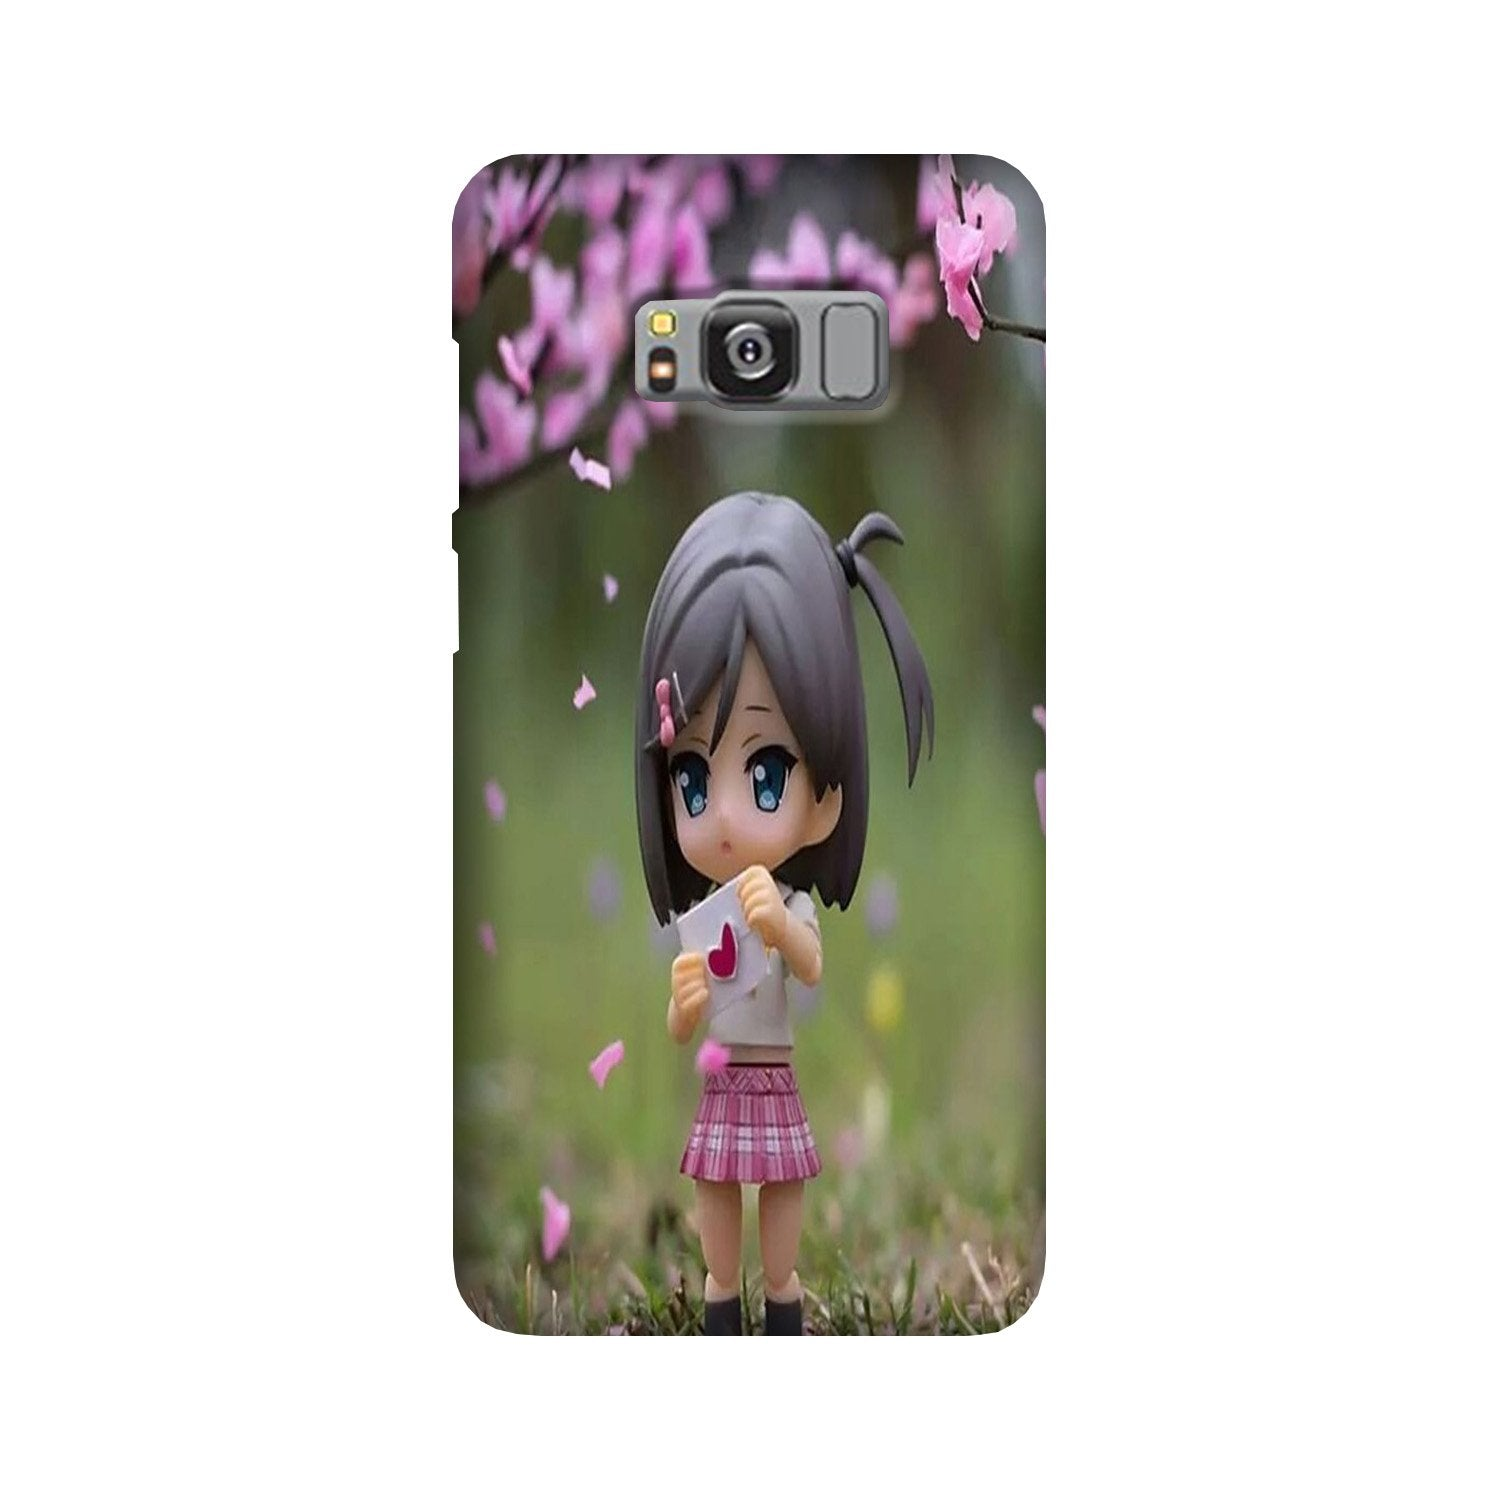 Cute Girl Case for Galaxy S8 Plus